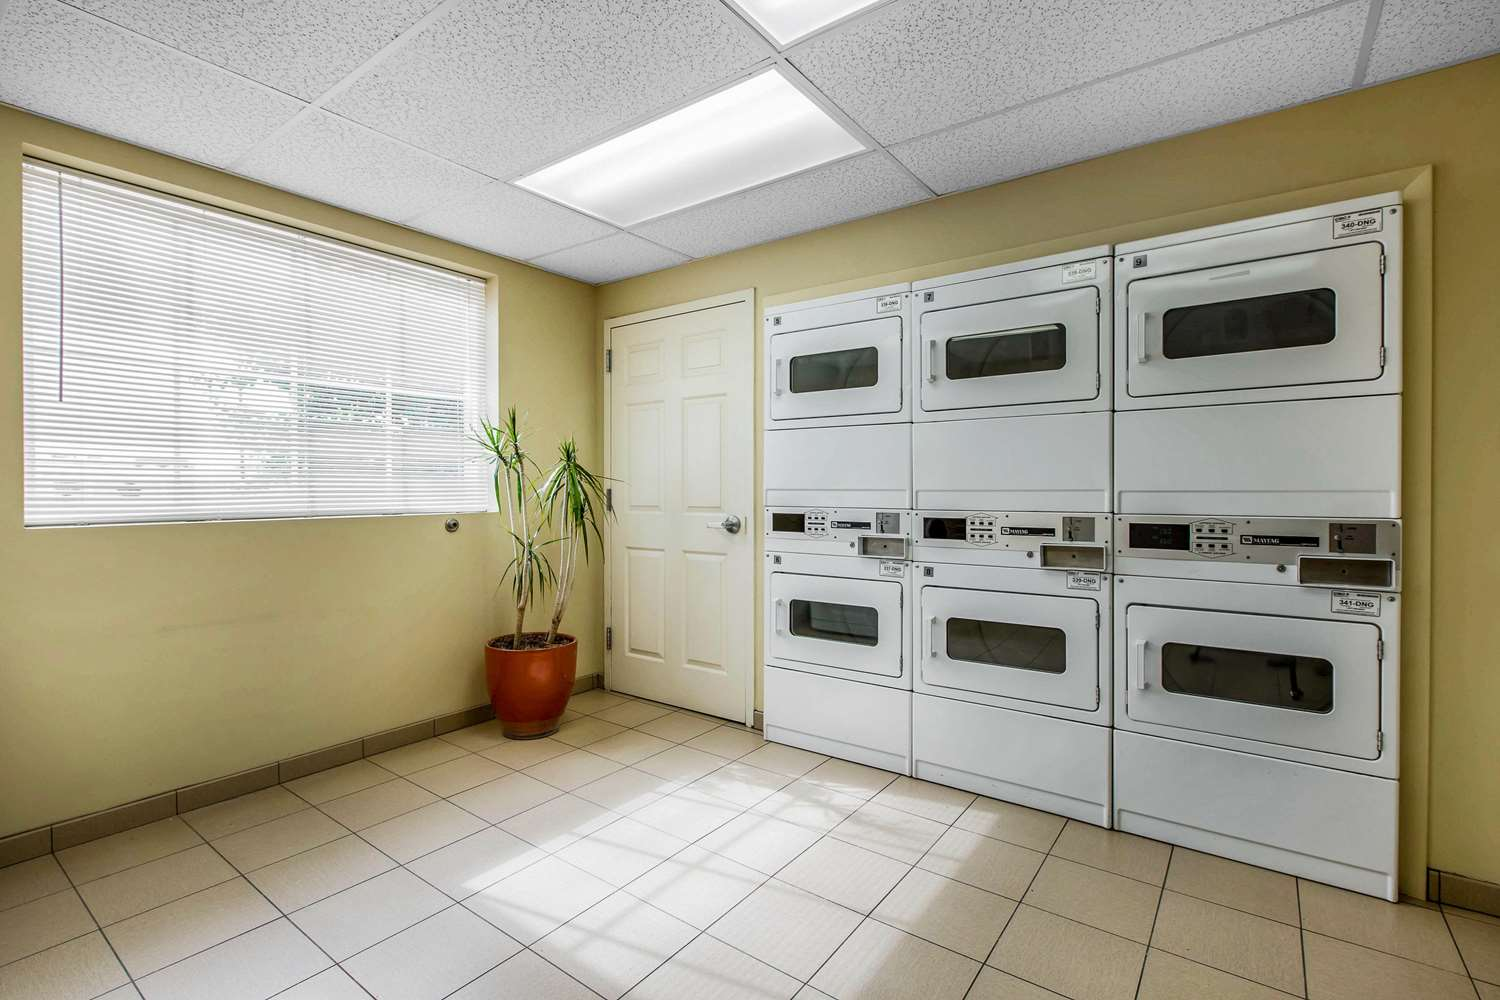 Other - Suburban Extended Stay Hotel Jacksonville